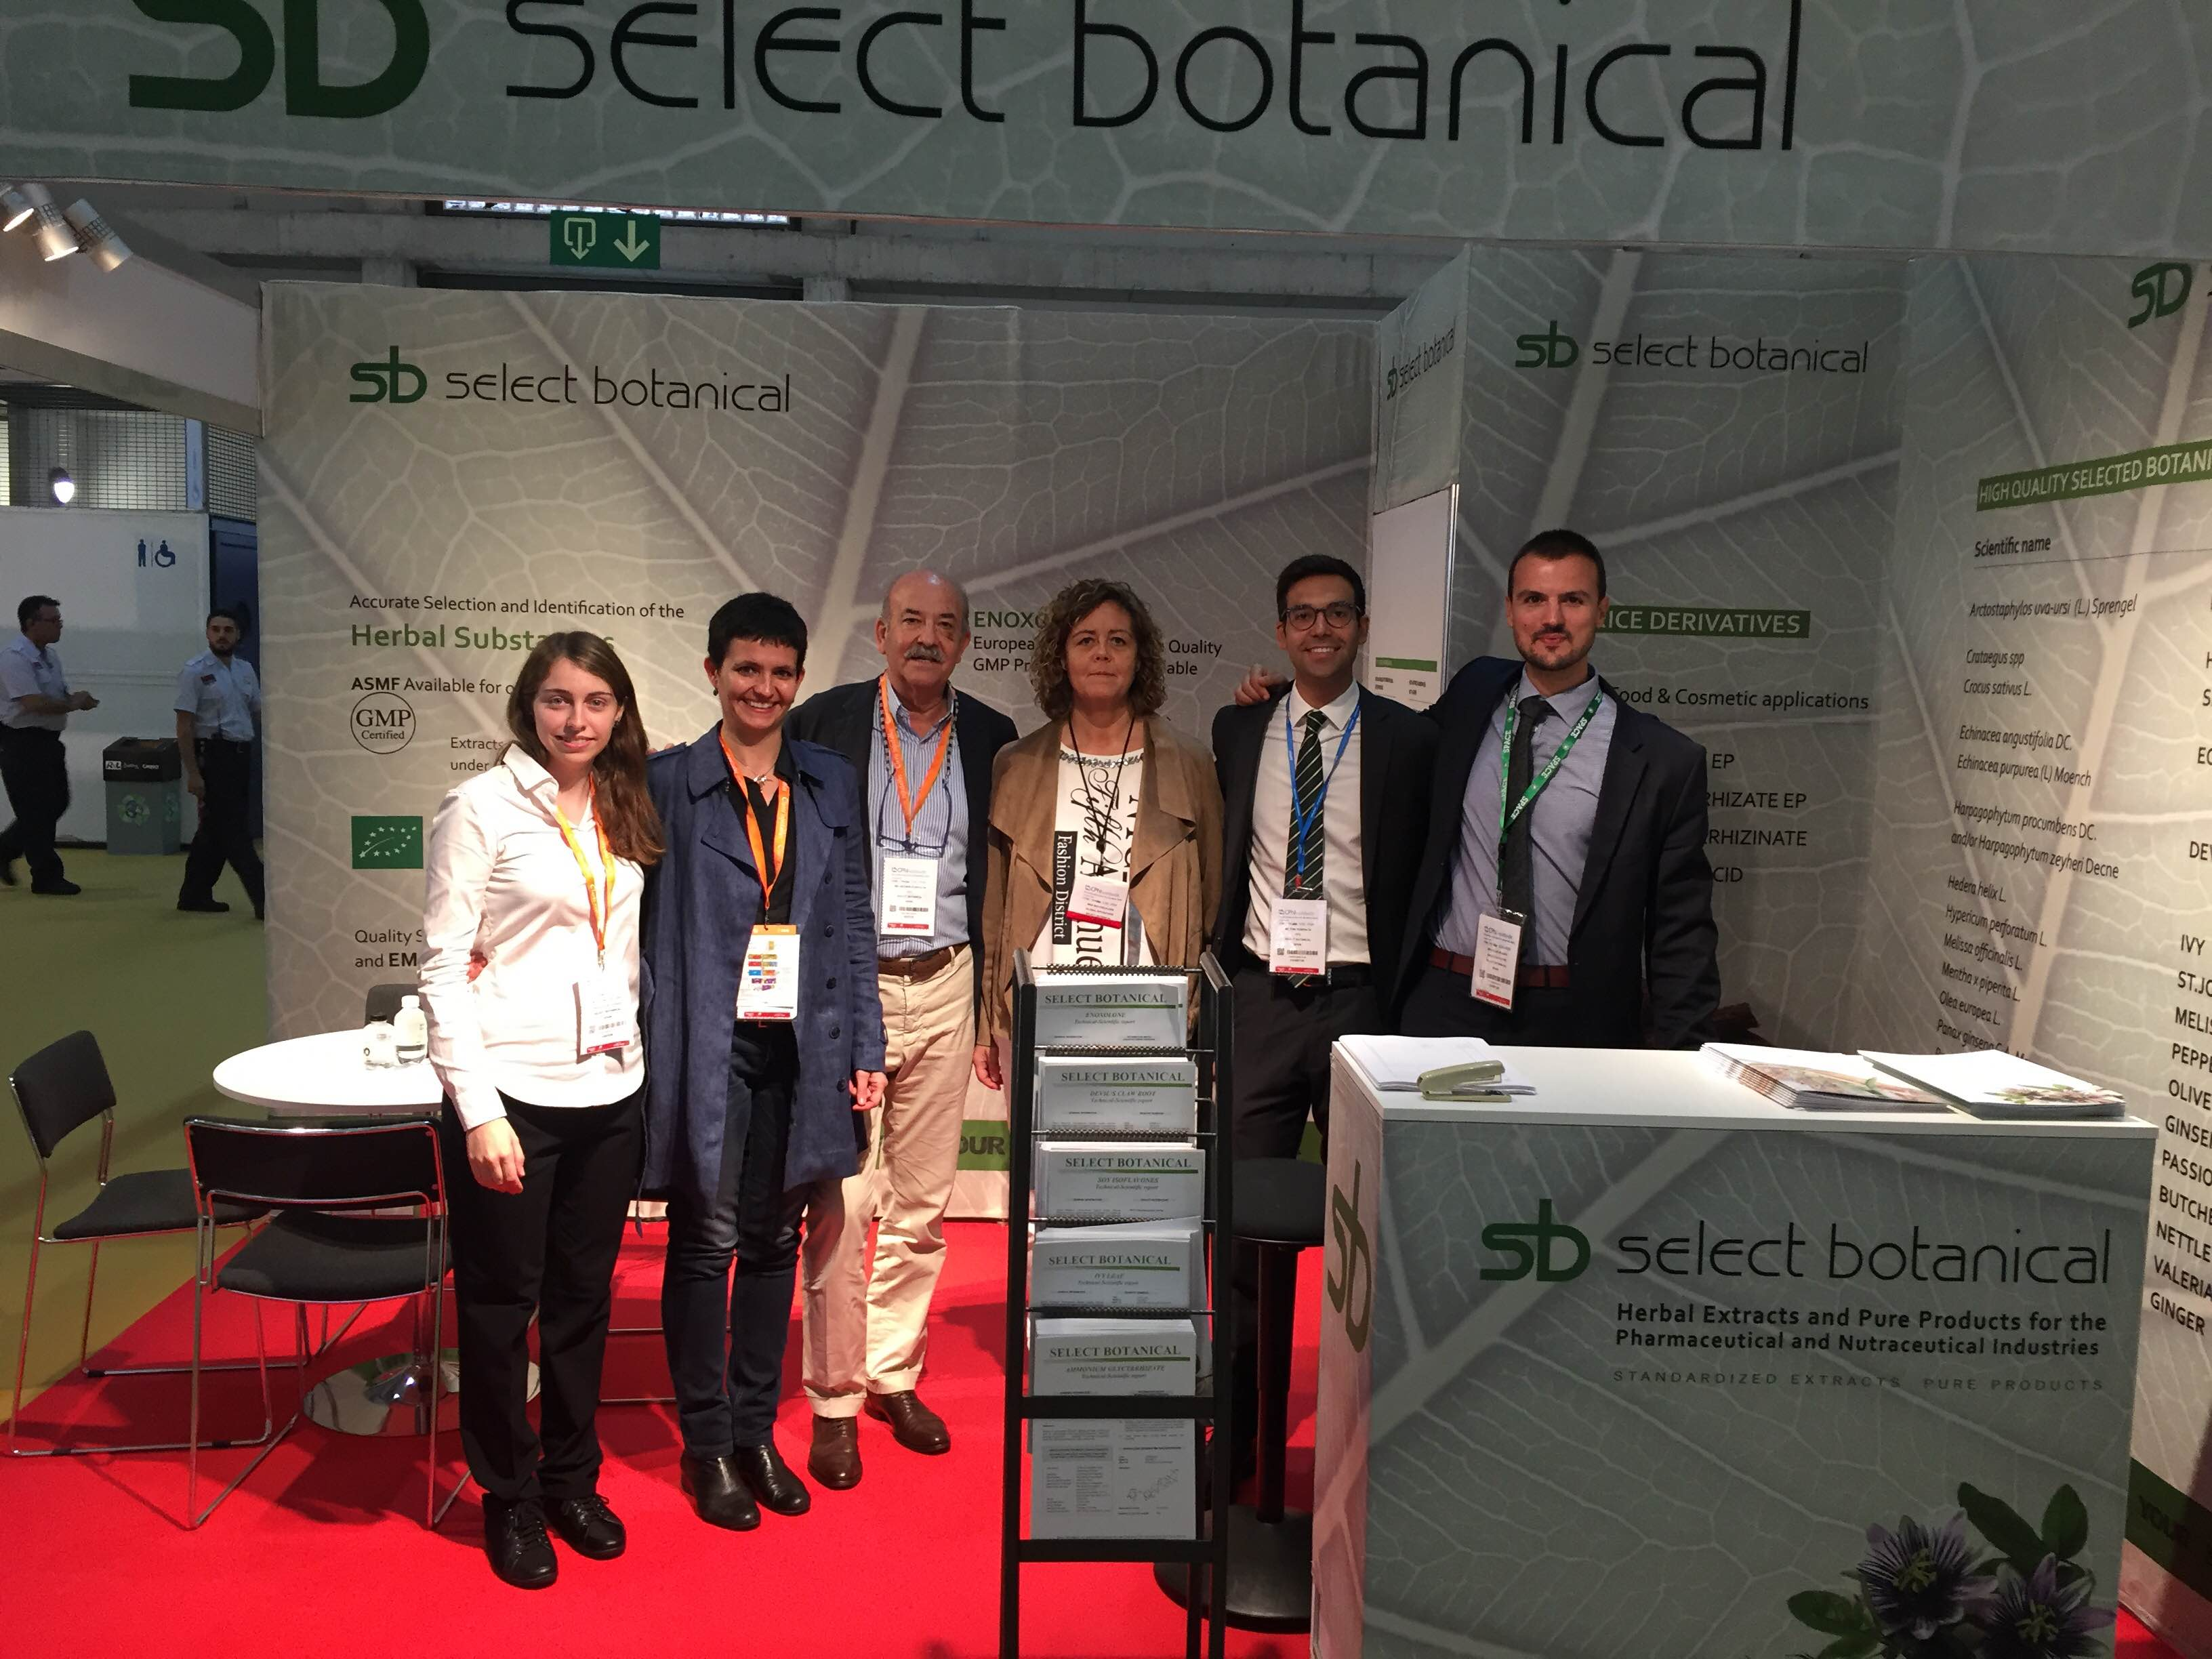 We would like to thank all attendees for their warm welcome given to Select Botanical. We were visited by our current clients and potential new customers, who received full information about our products. Thank you all for your visit!